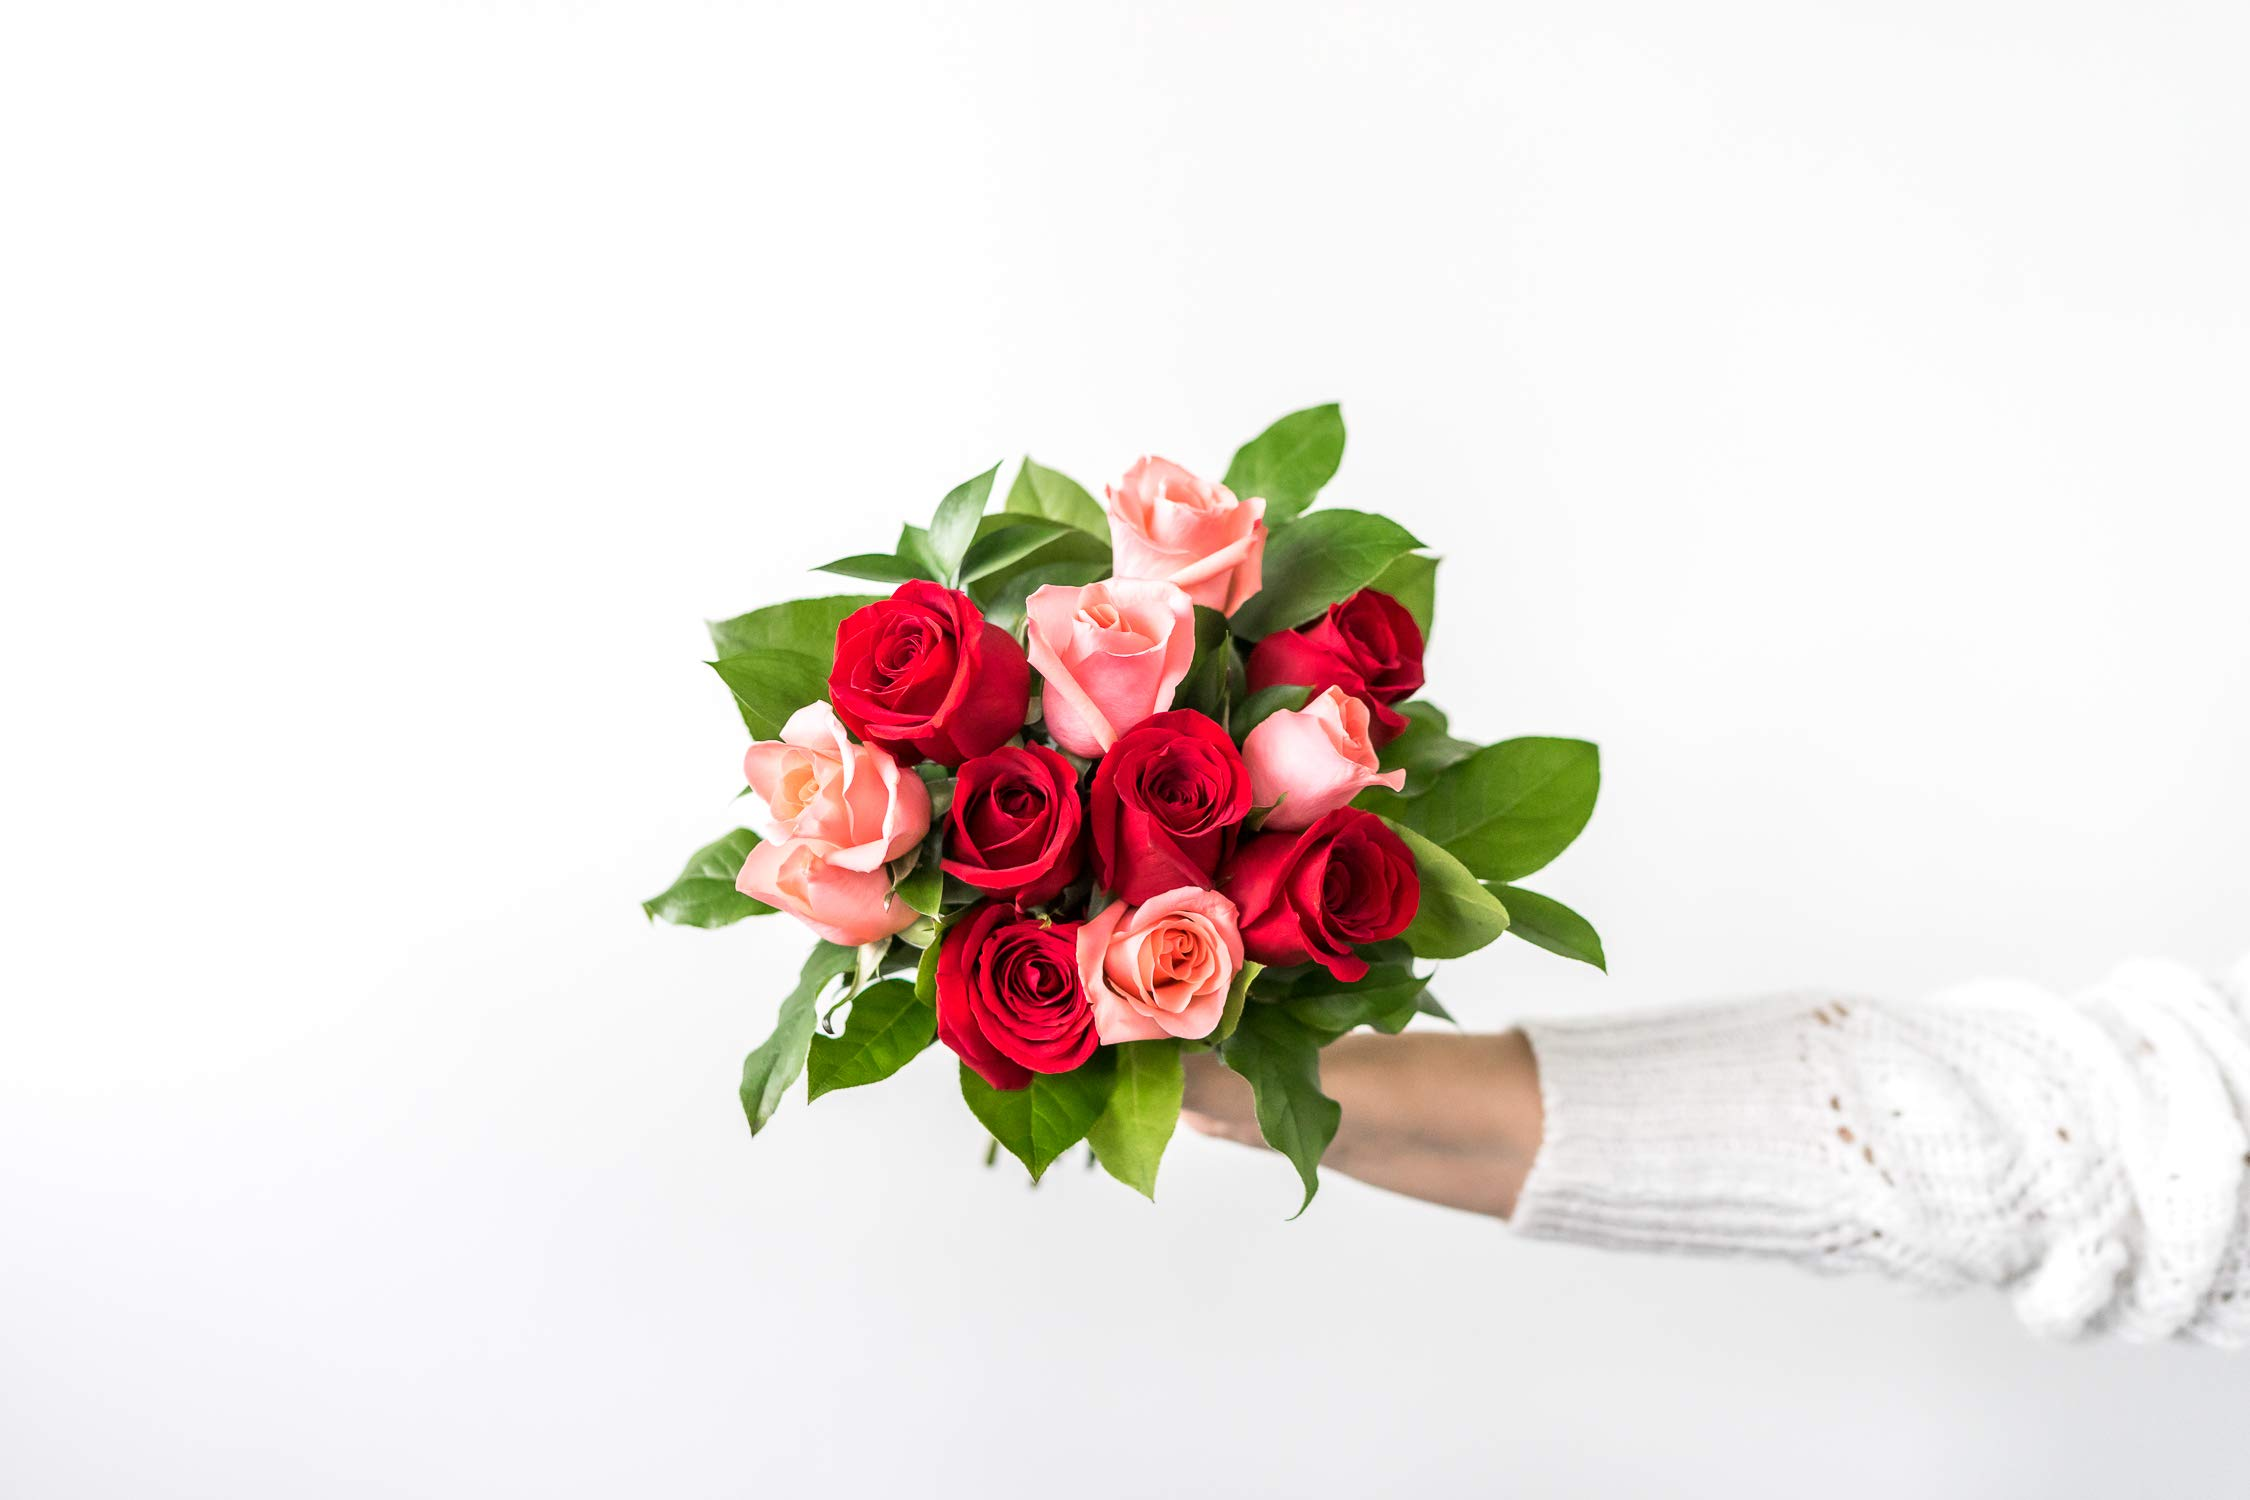 Flowers - One Dozen Red & Pink Roses with Godiva and a Bear (Free Vase Included) by From You Flowers (Image #1)